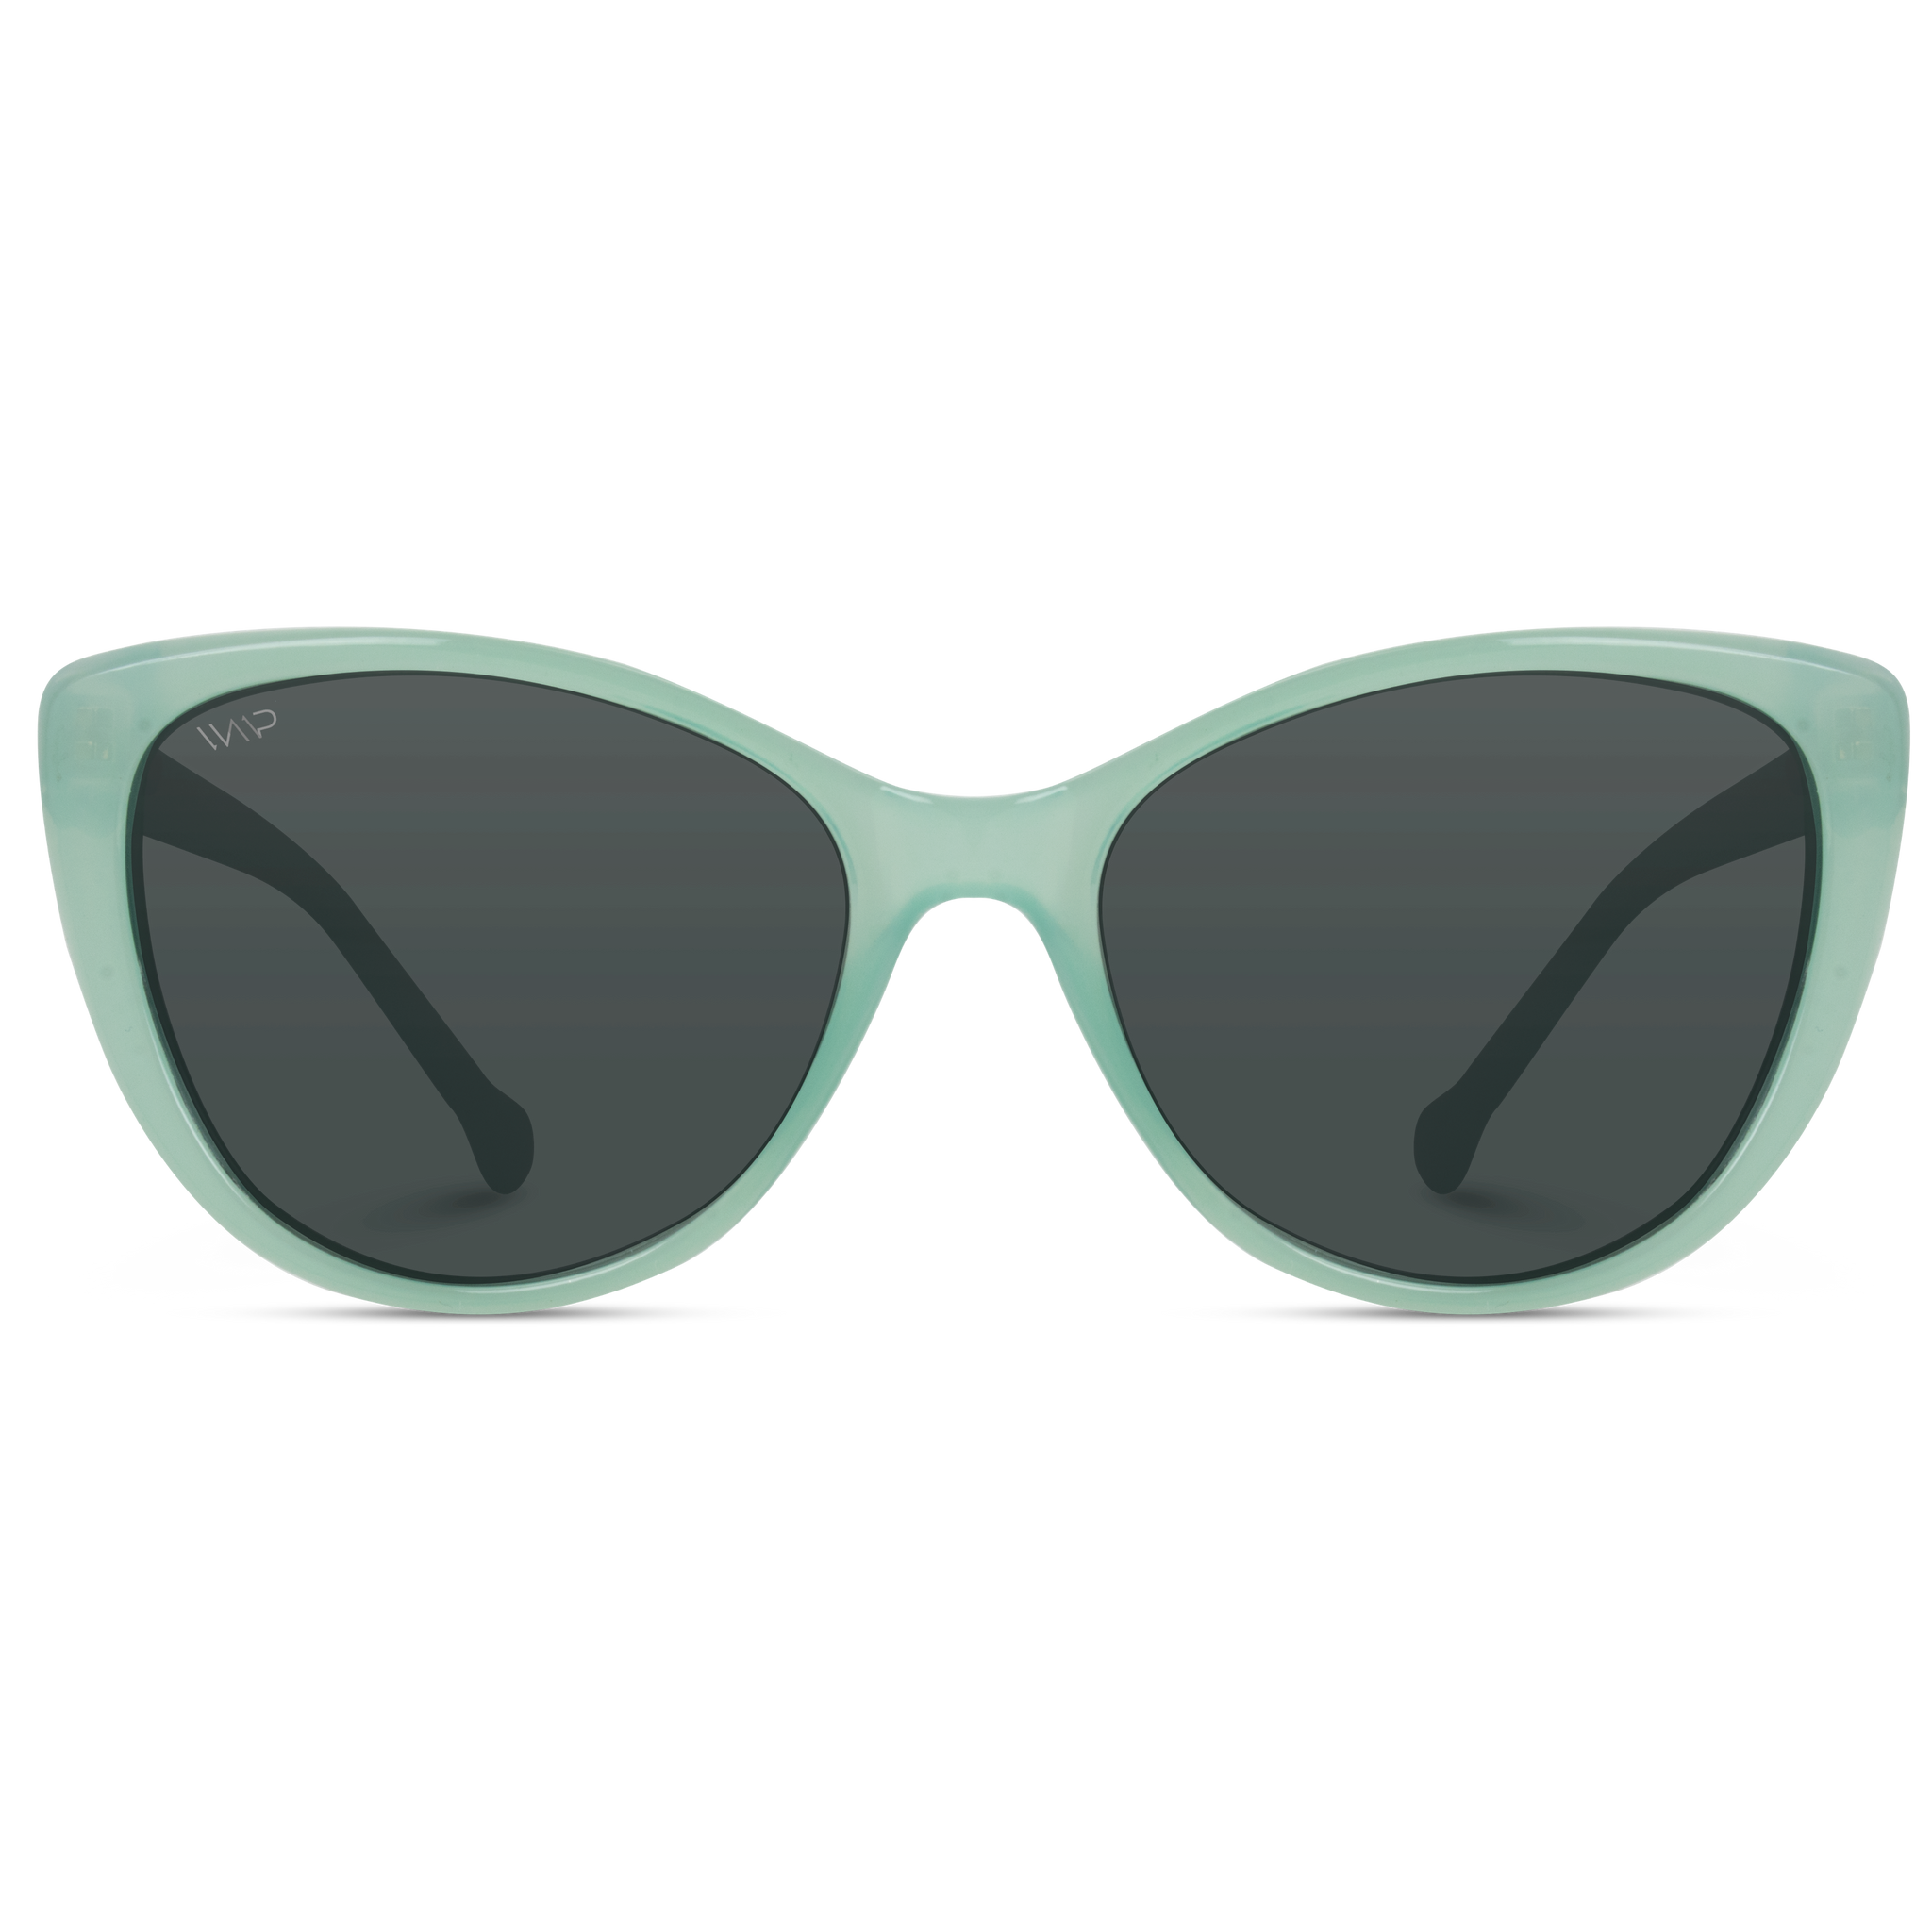 teal frame women elegant cat eye sunglasses